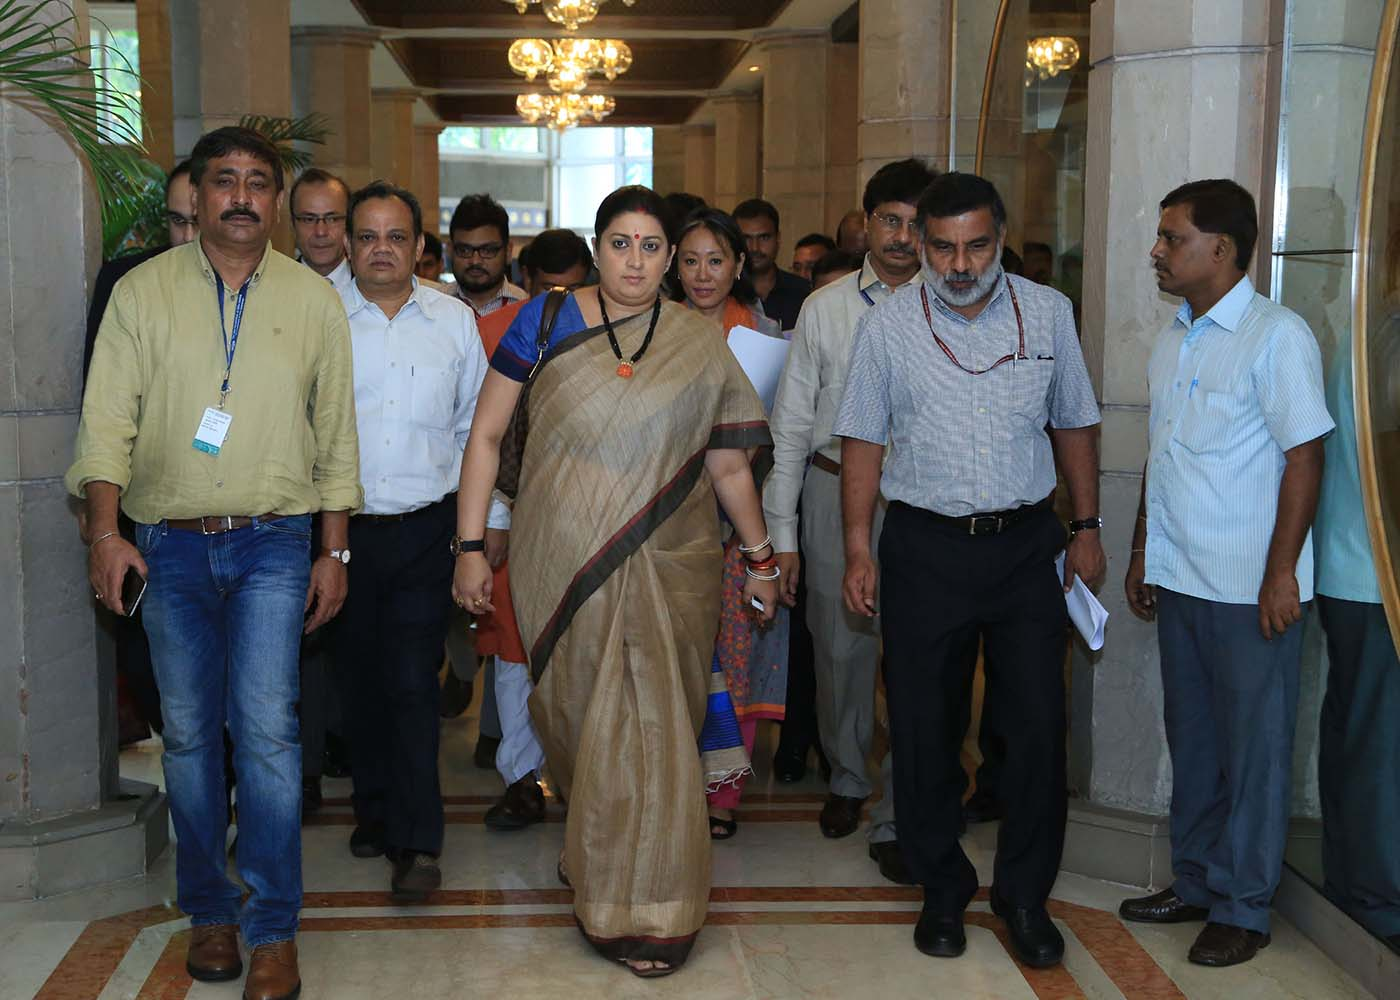 Hon'ble Union Minister of Textiles Smt. Smriti Zubin Irani, on her way to attend the Jute sector Stakeholders' meeting on 6th September 2016 at Taj Bengal, Kolkata